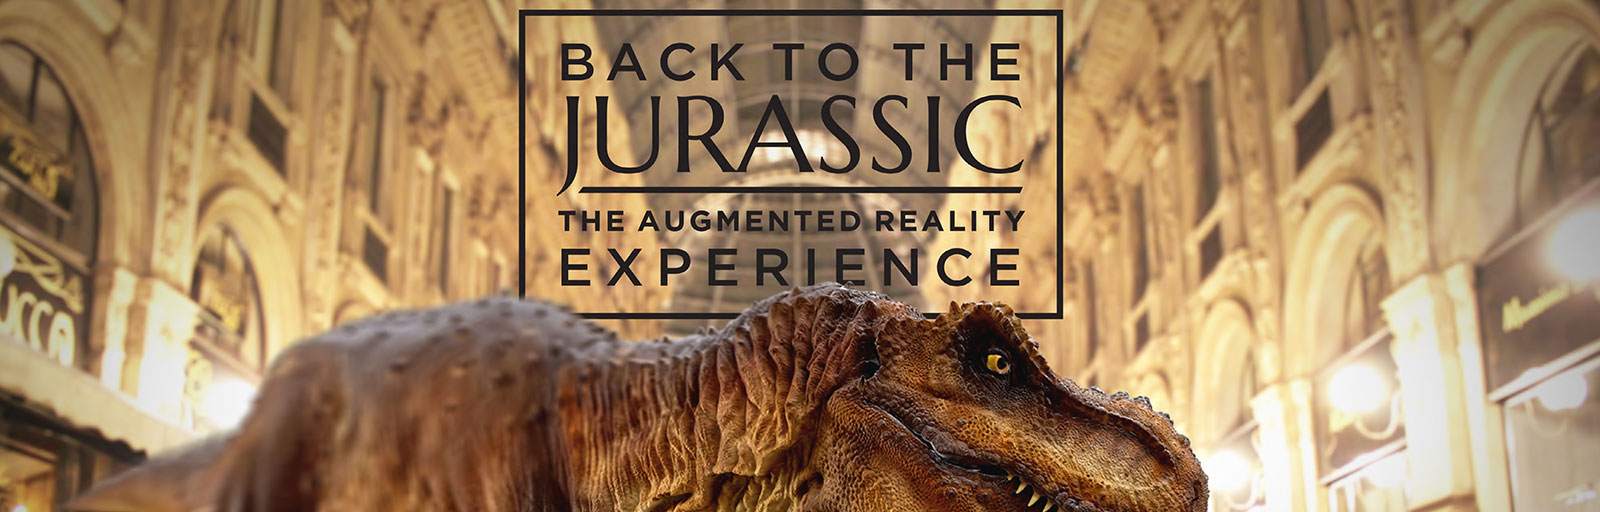 dinoexhibit-webslider